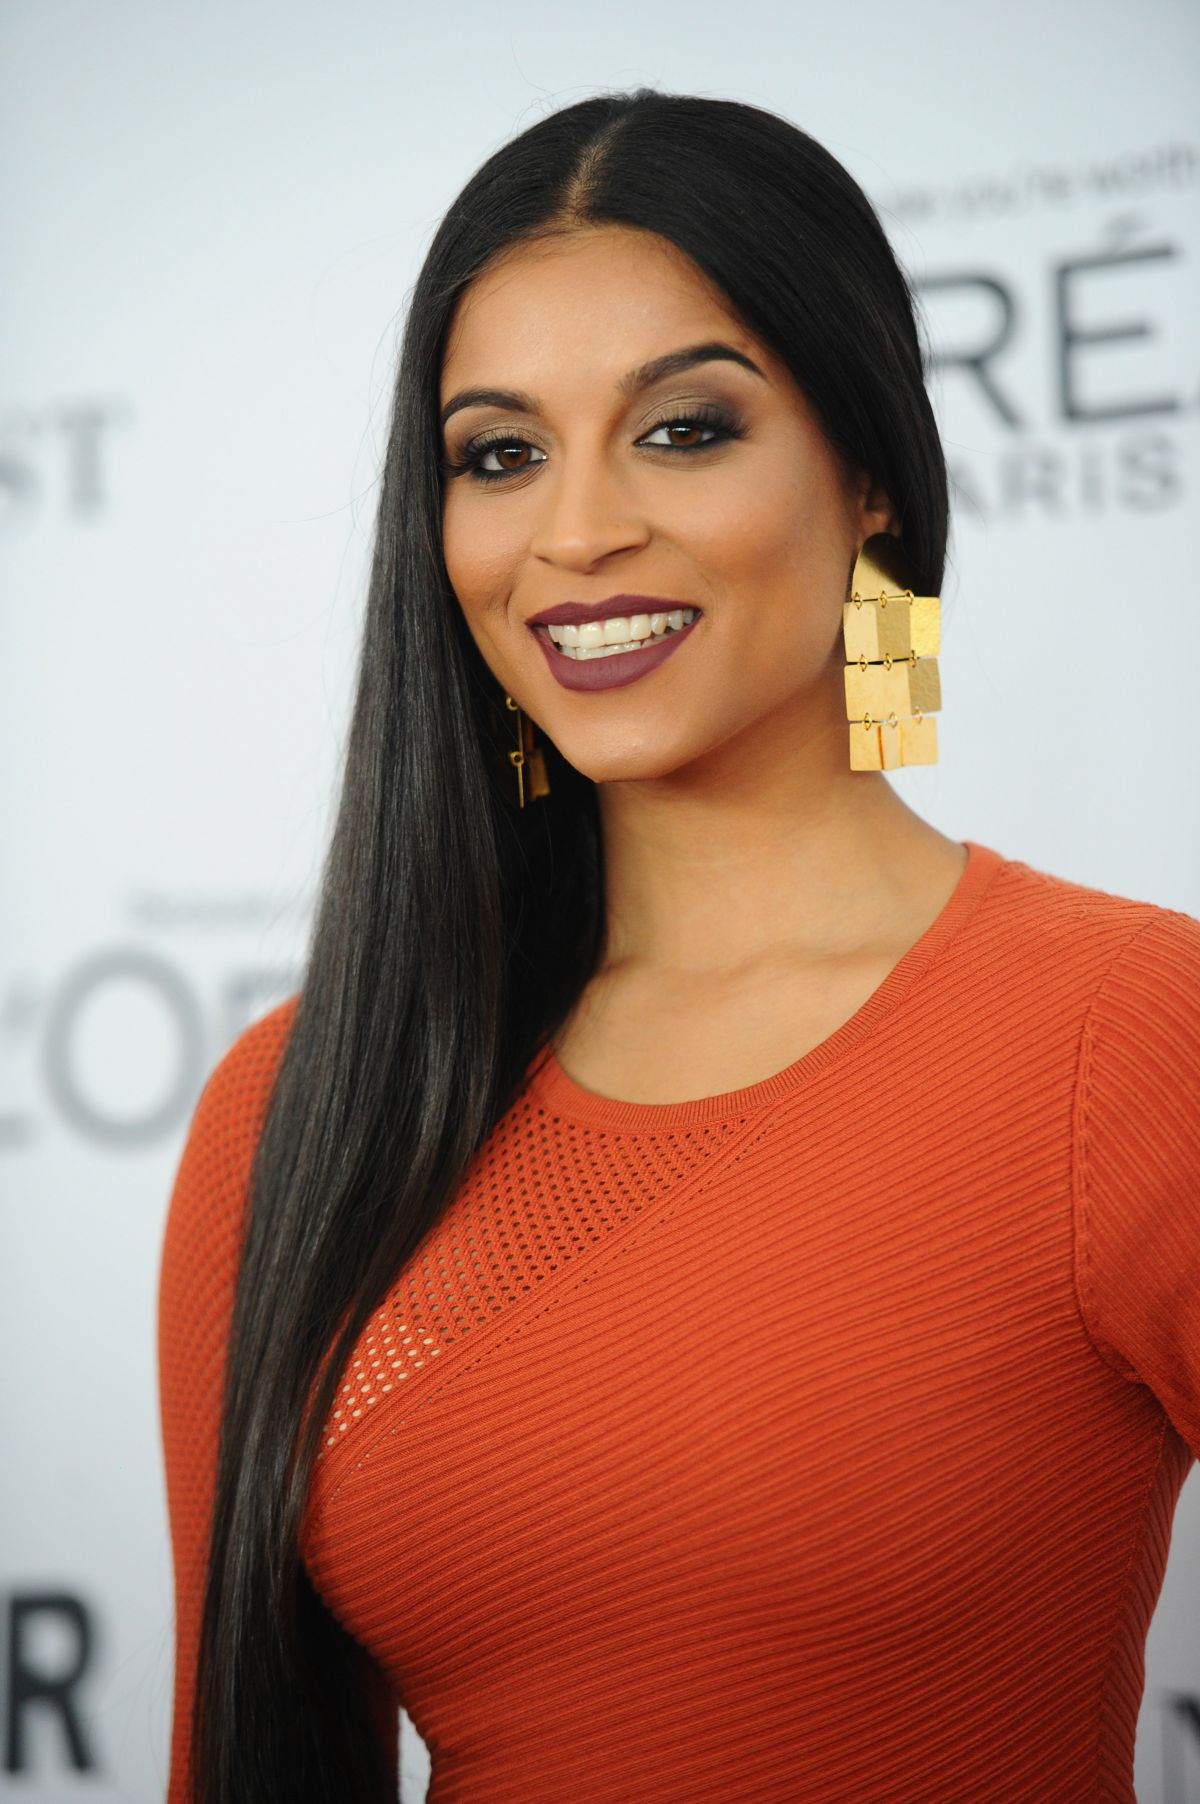 Lilly Singh nudes (11 foto and video), Ass, Paparazzi, Twitter, swimsuit 2006